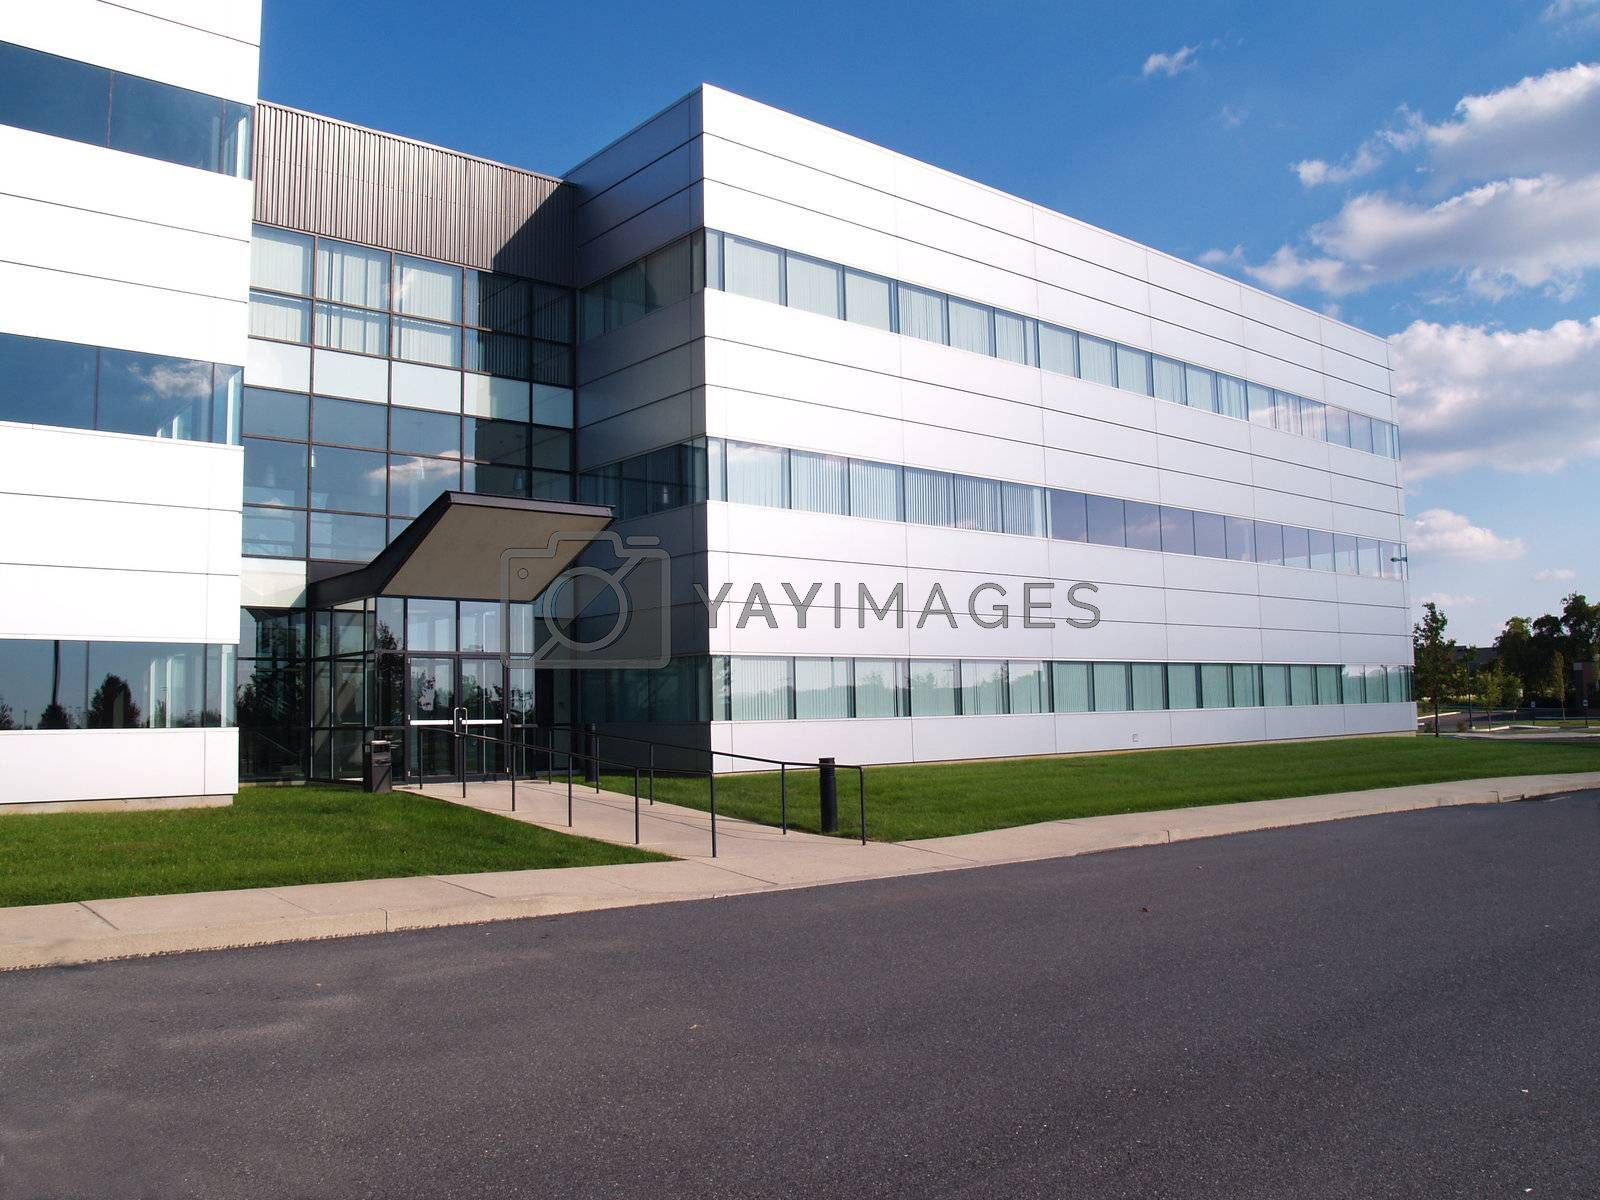 exterior of a modern industrial building